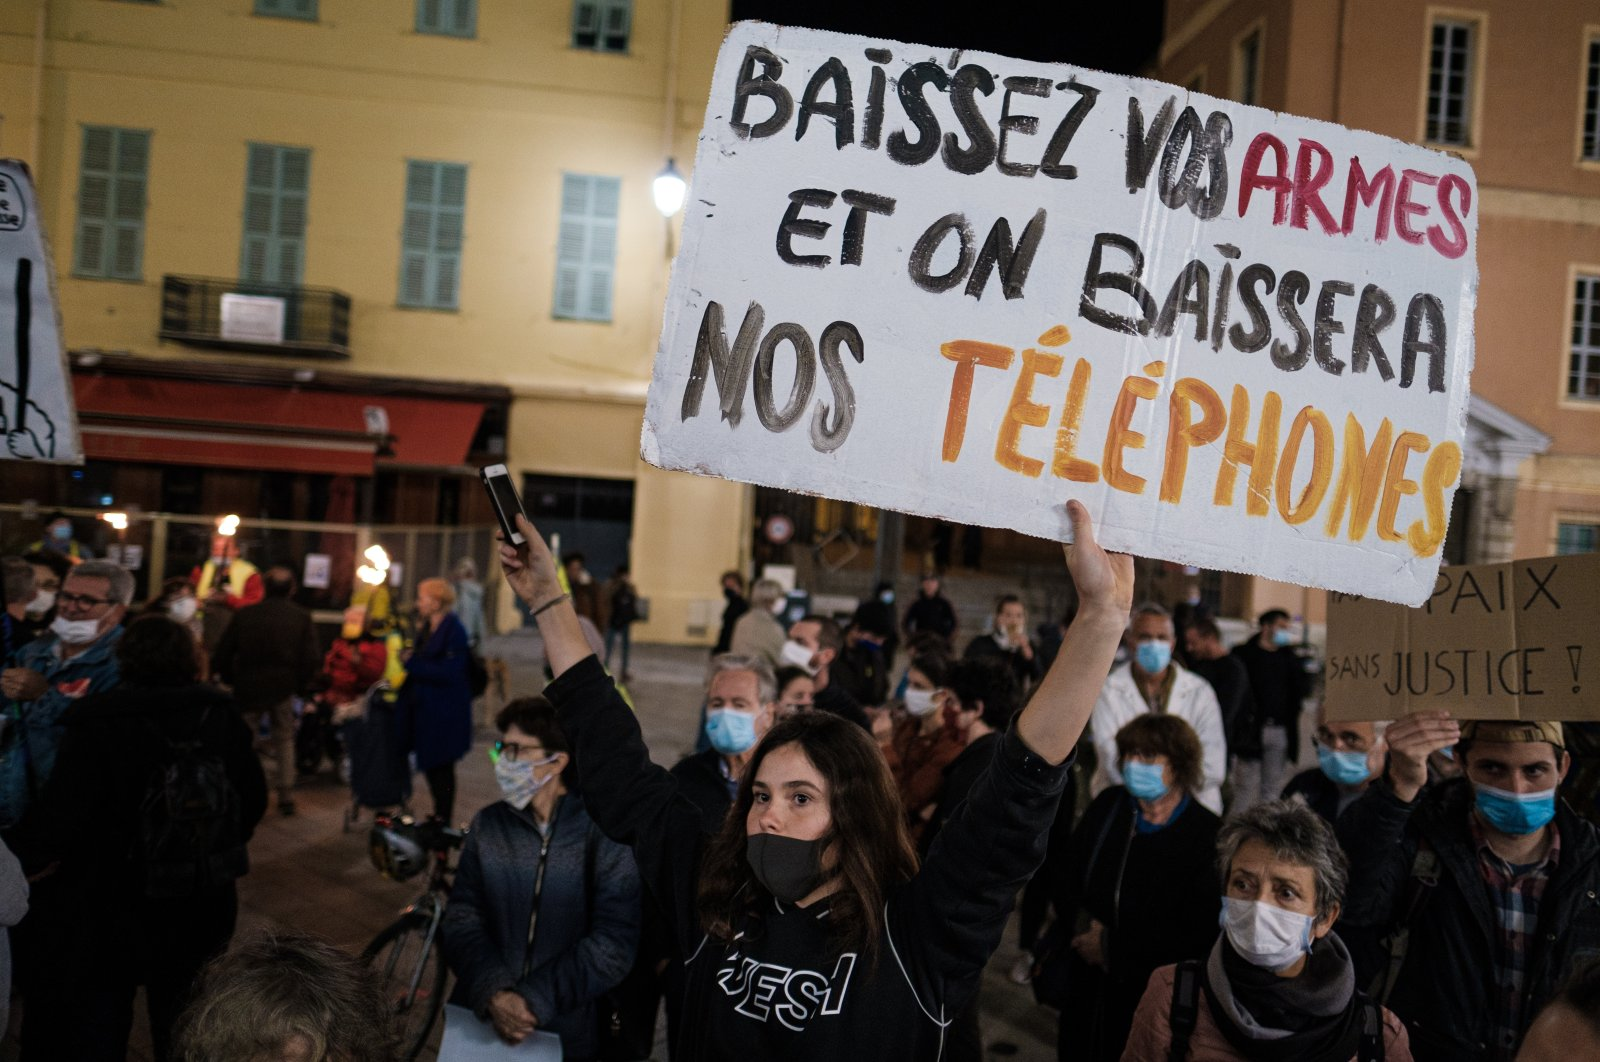 """Demonstrations protesting the global security law in front of the courthouse in Nice, Nov. 17, 2020. The sign says """"Lower your weapons and we will lower our phones."""" (Jean Baptiste Premat / Hans Lucas via Reuters)"""